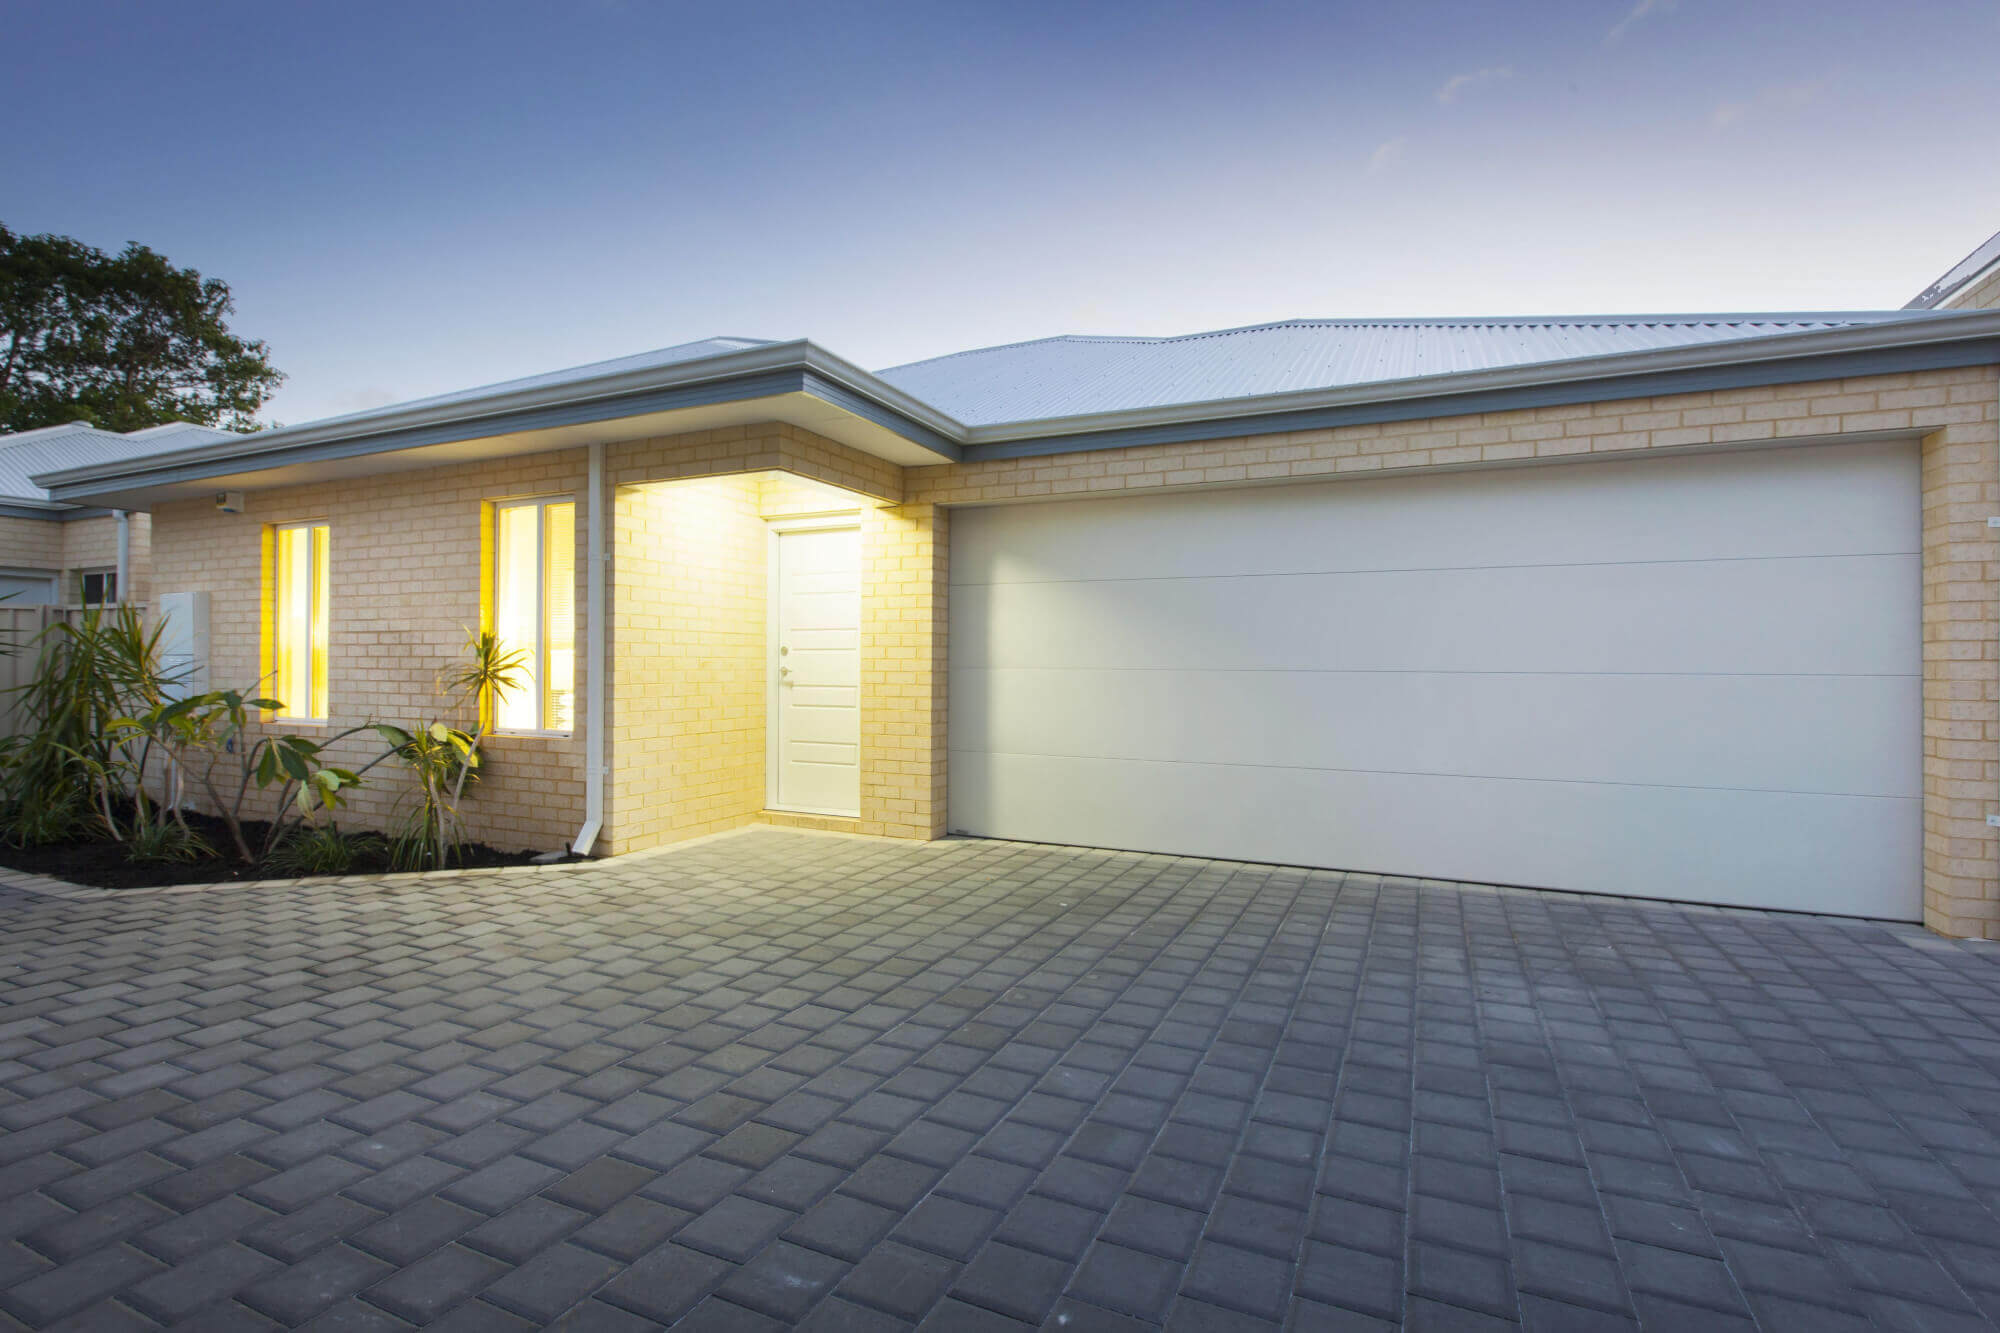 27b Thorney Way Balga WA 6061